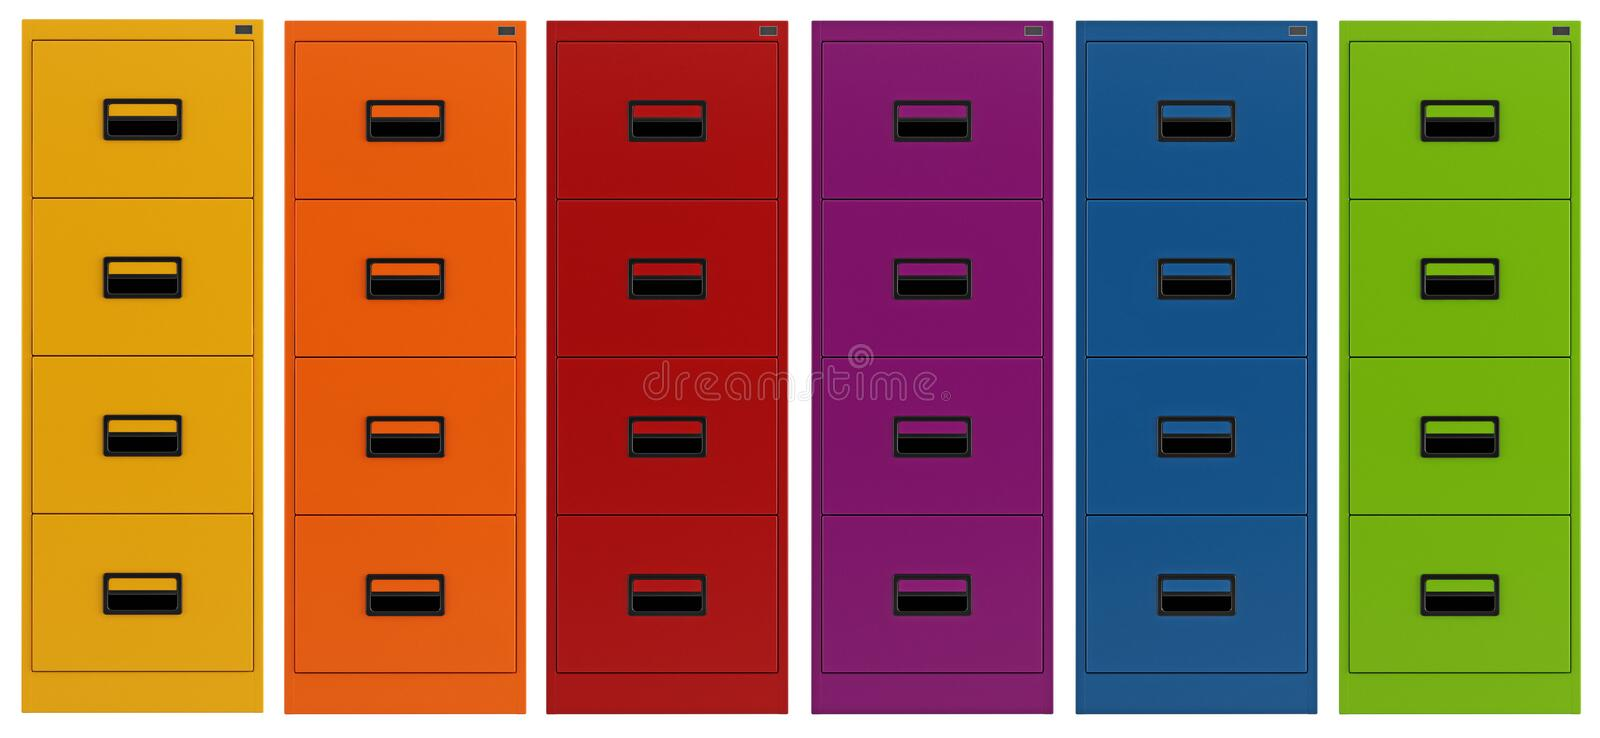 Colorful Filing Cabinet Royalty Free Stock Photography